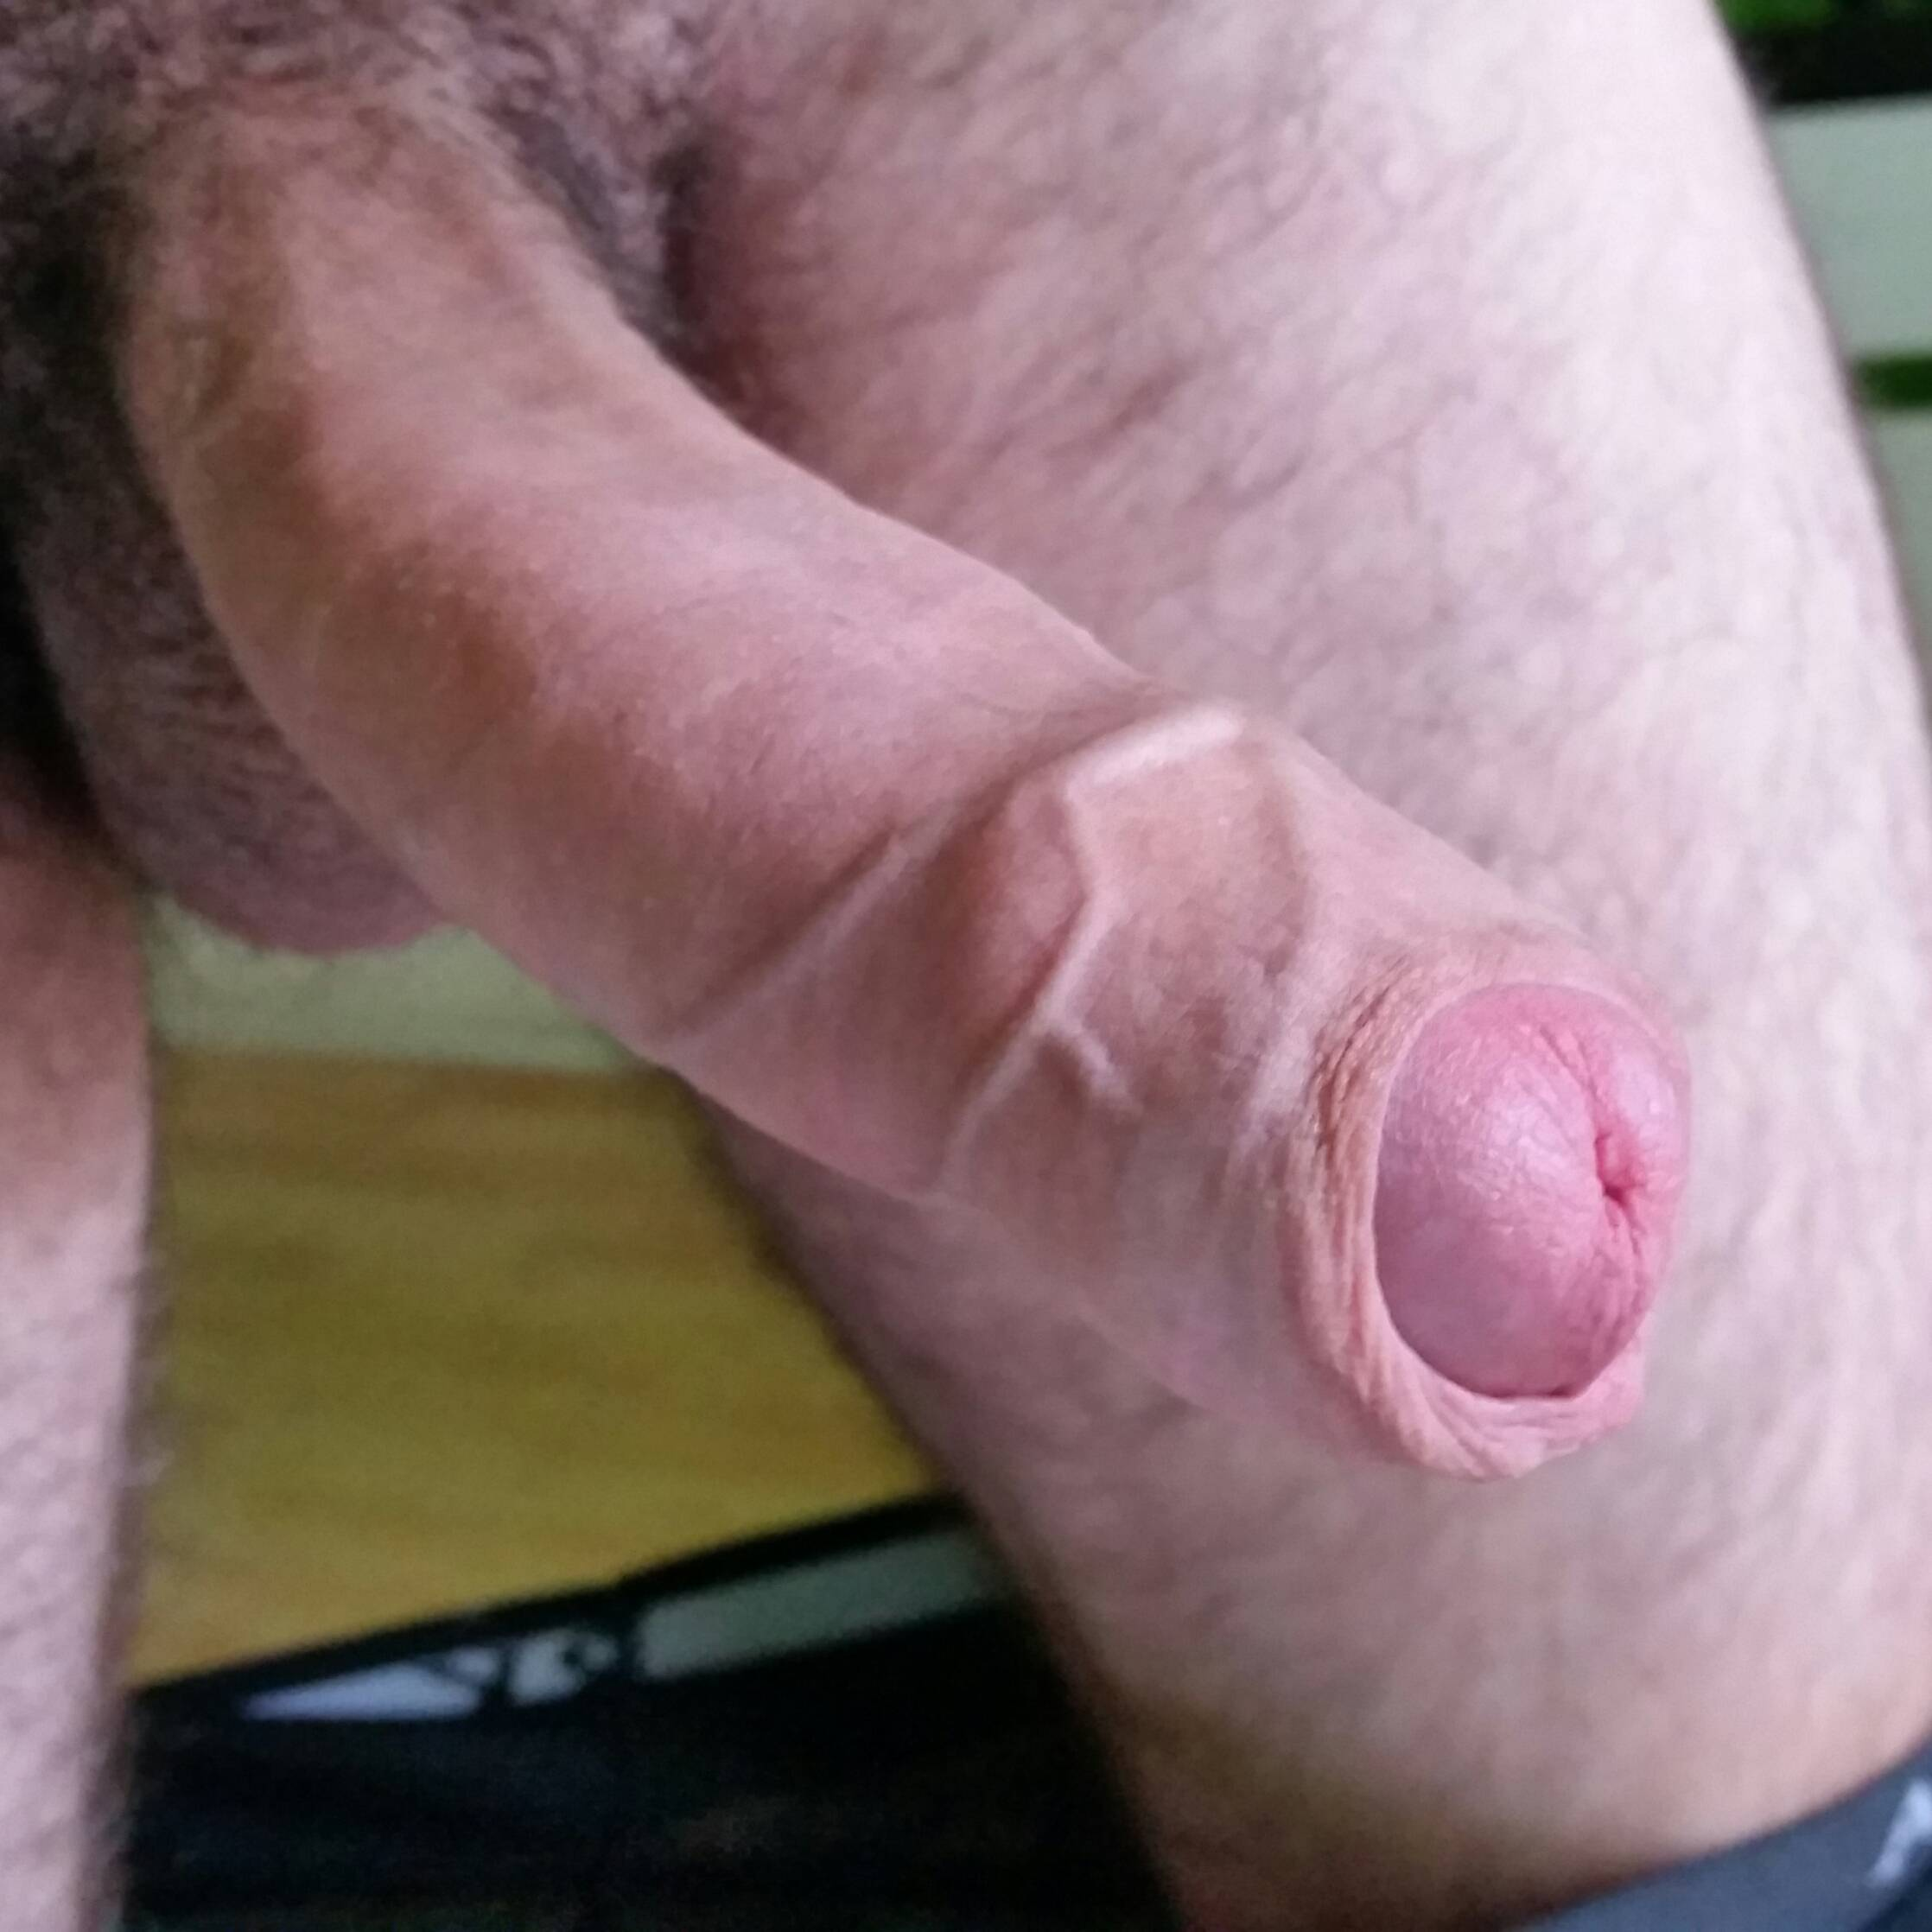 cocks foreskin with Men long